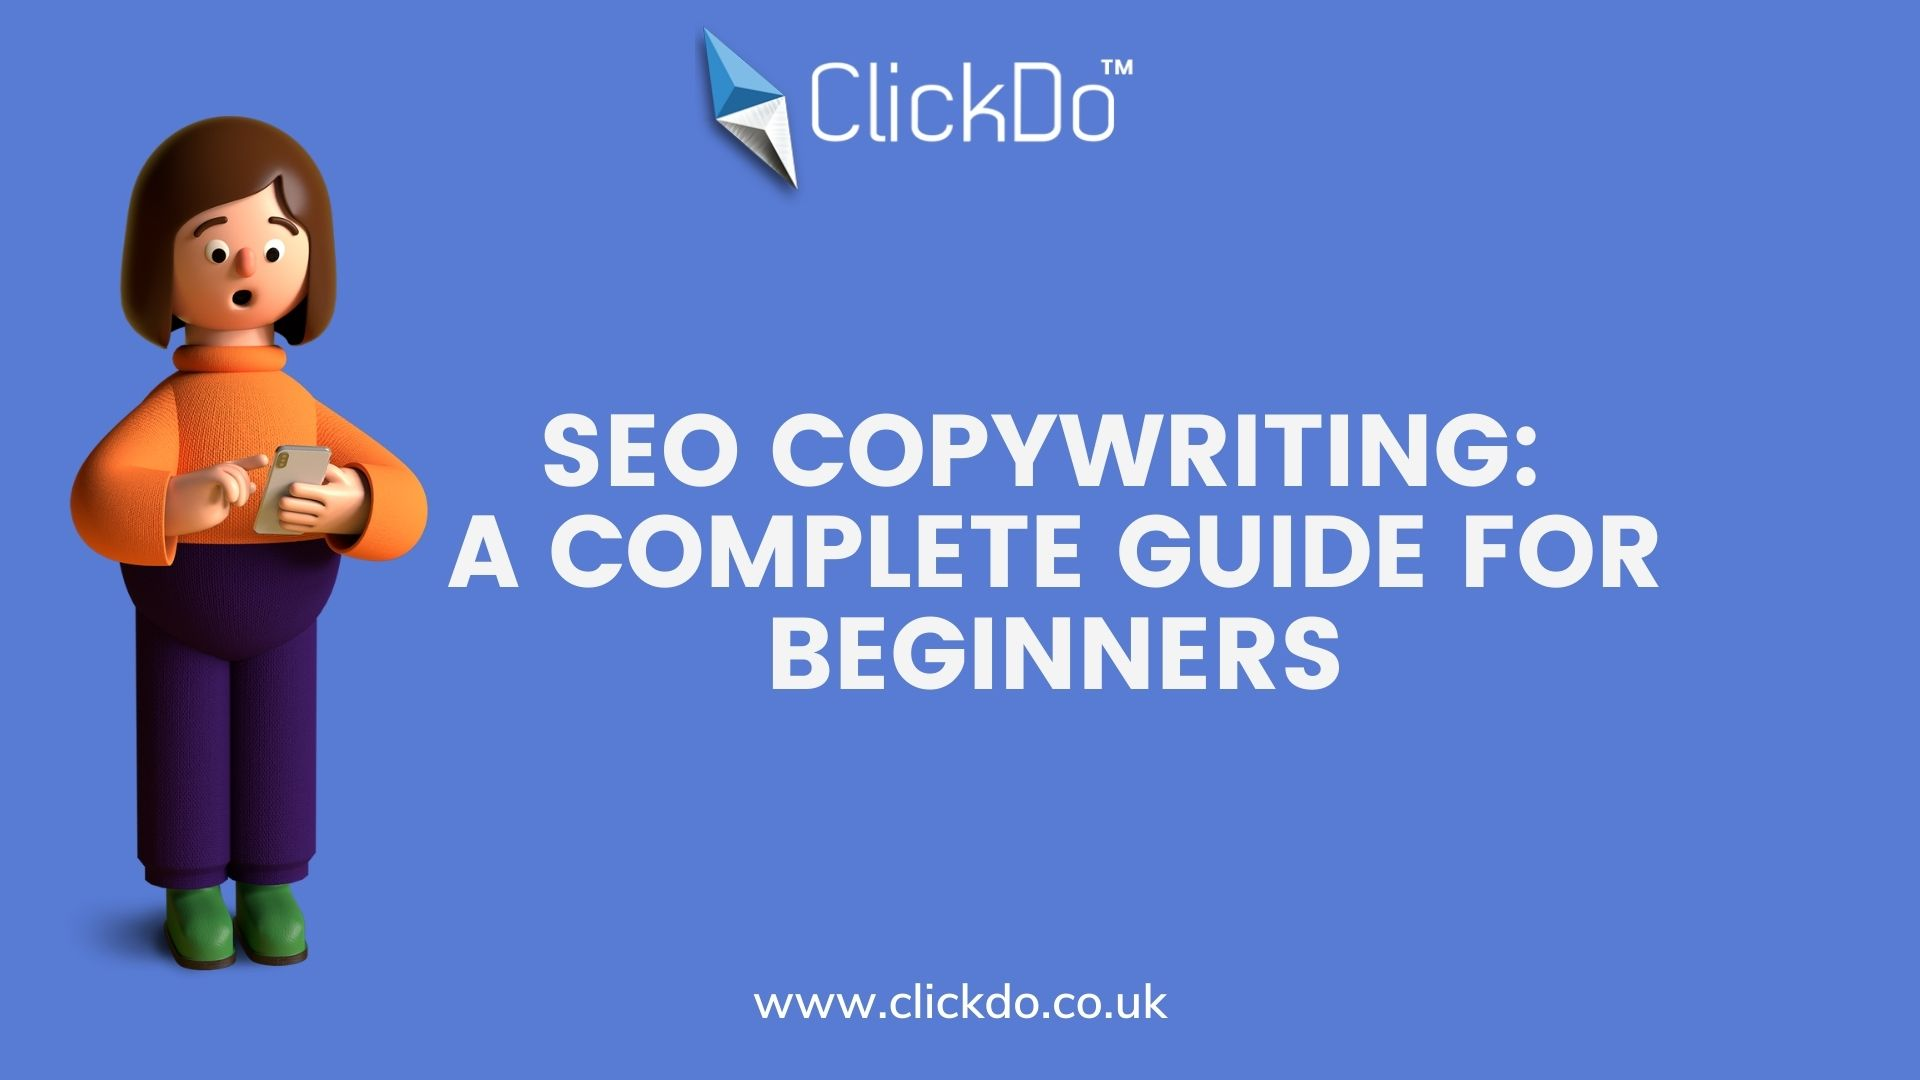 SEO Copywriting A Complete Guide for Beginners